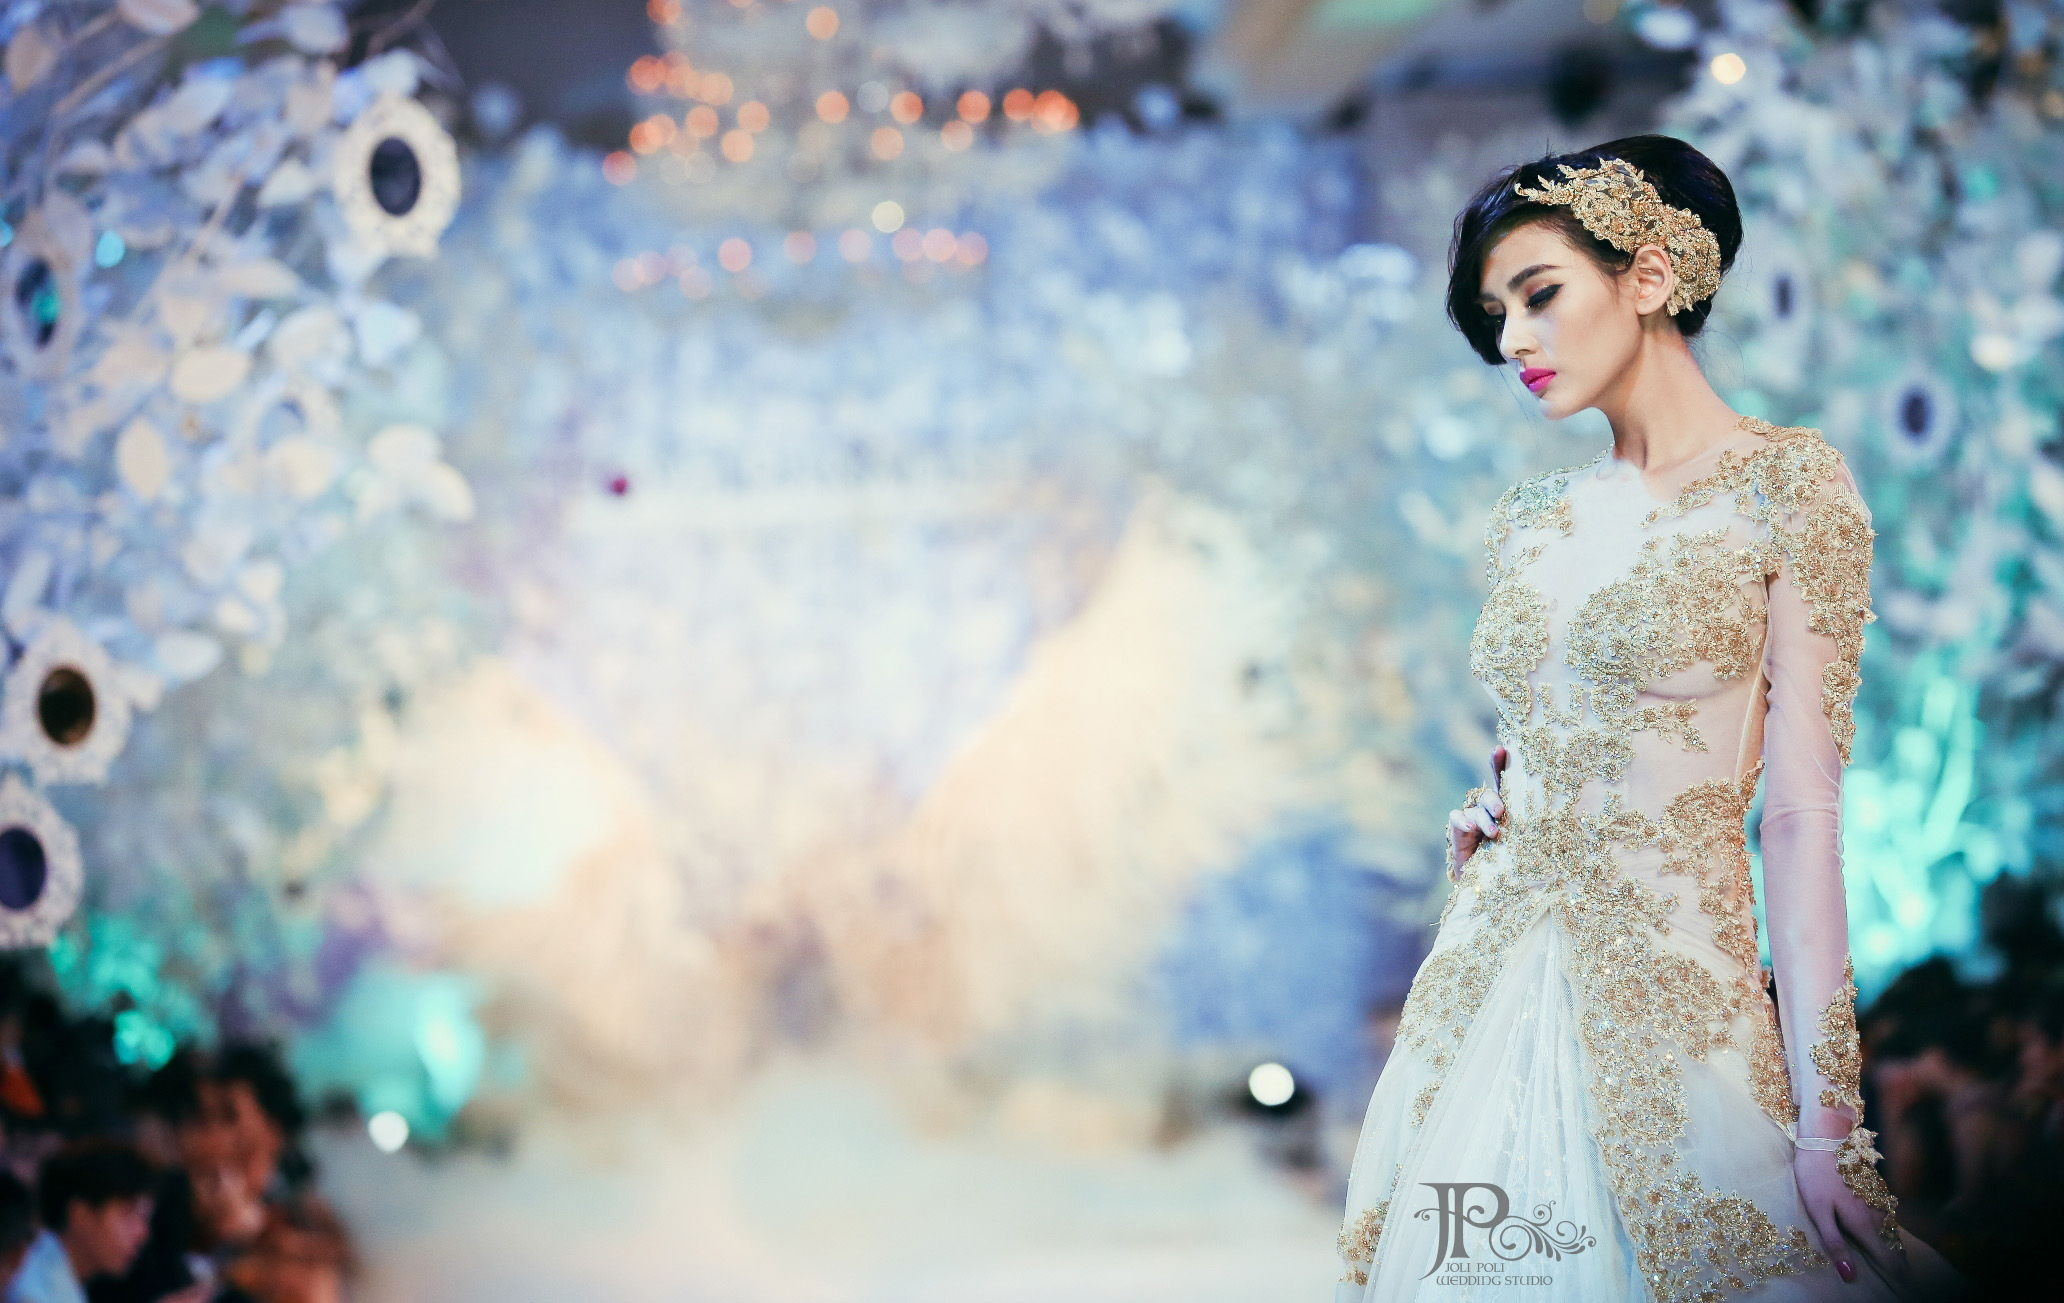 Joli poli bridal wear